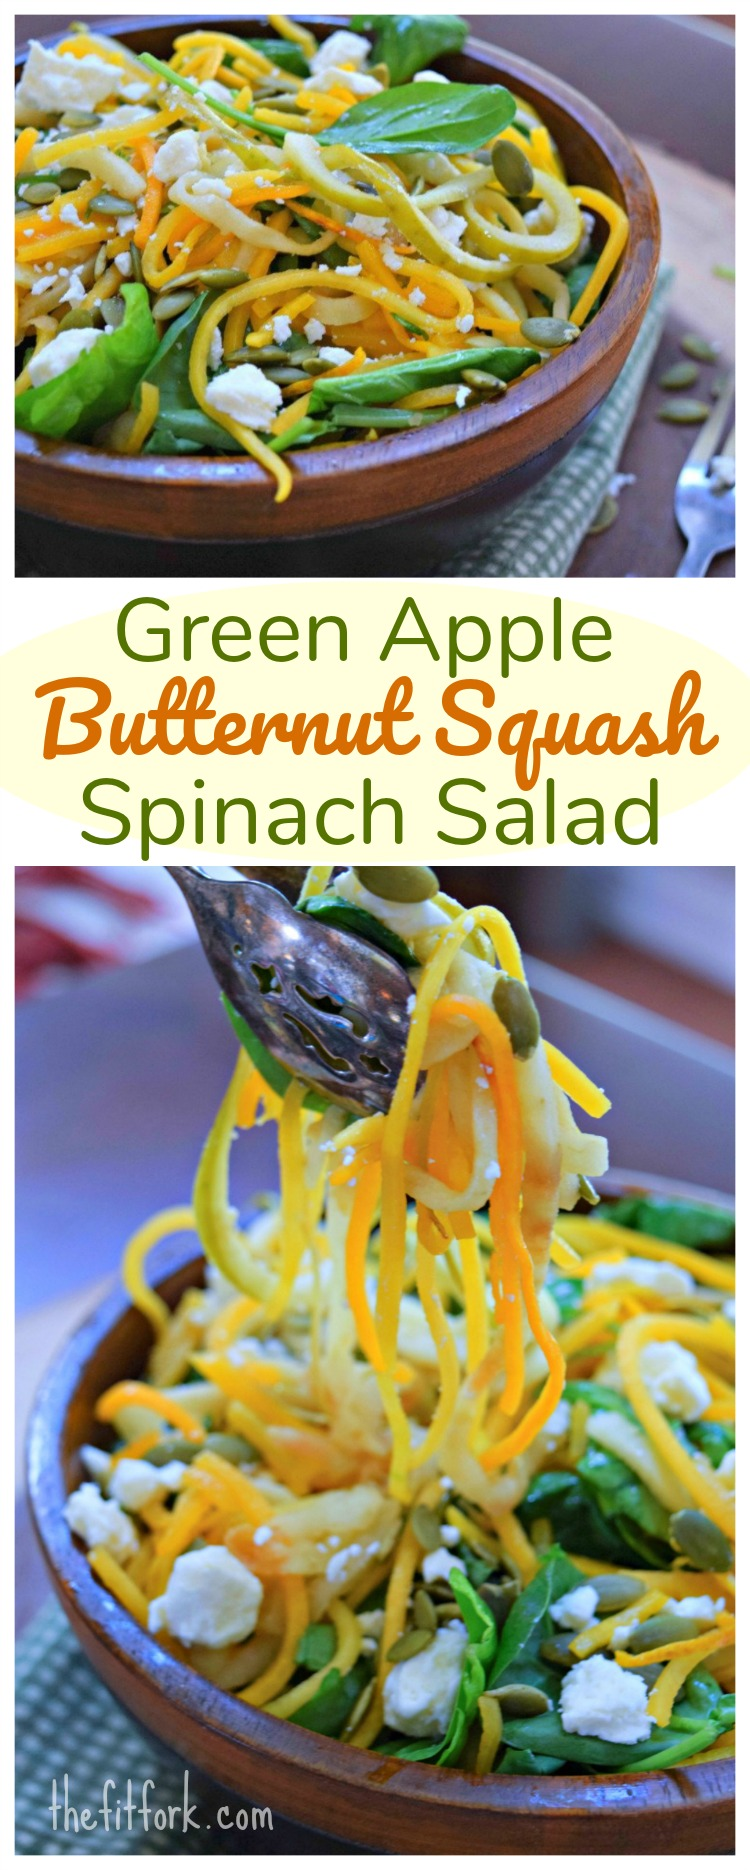 Spiralized Green Apple Butternut Squash Salad makes a beautiful, nourishing side dish loaded with fall season fruits and vegetables. Serve as a side dish or add protein to make an entree salad. Finished with feta, pepita seeds and ginger honey dressing.